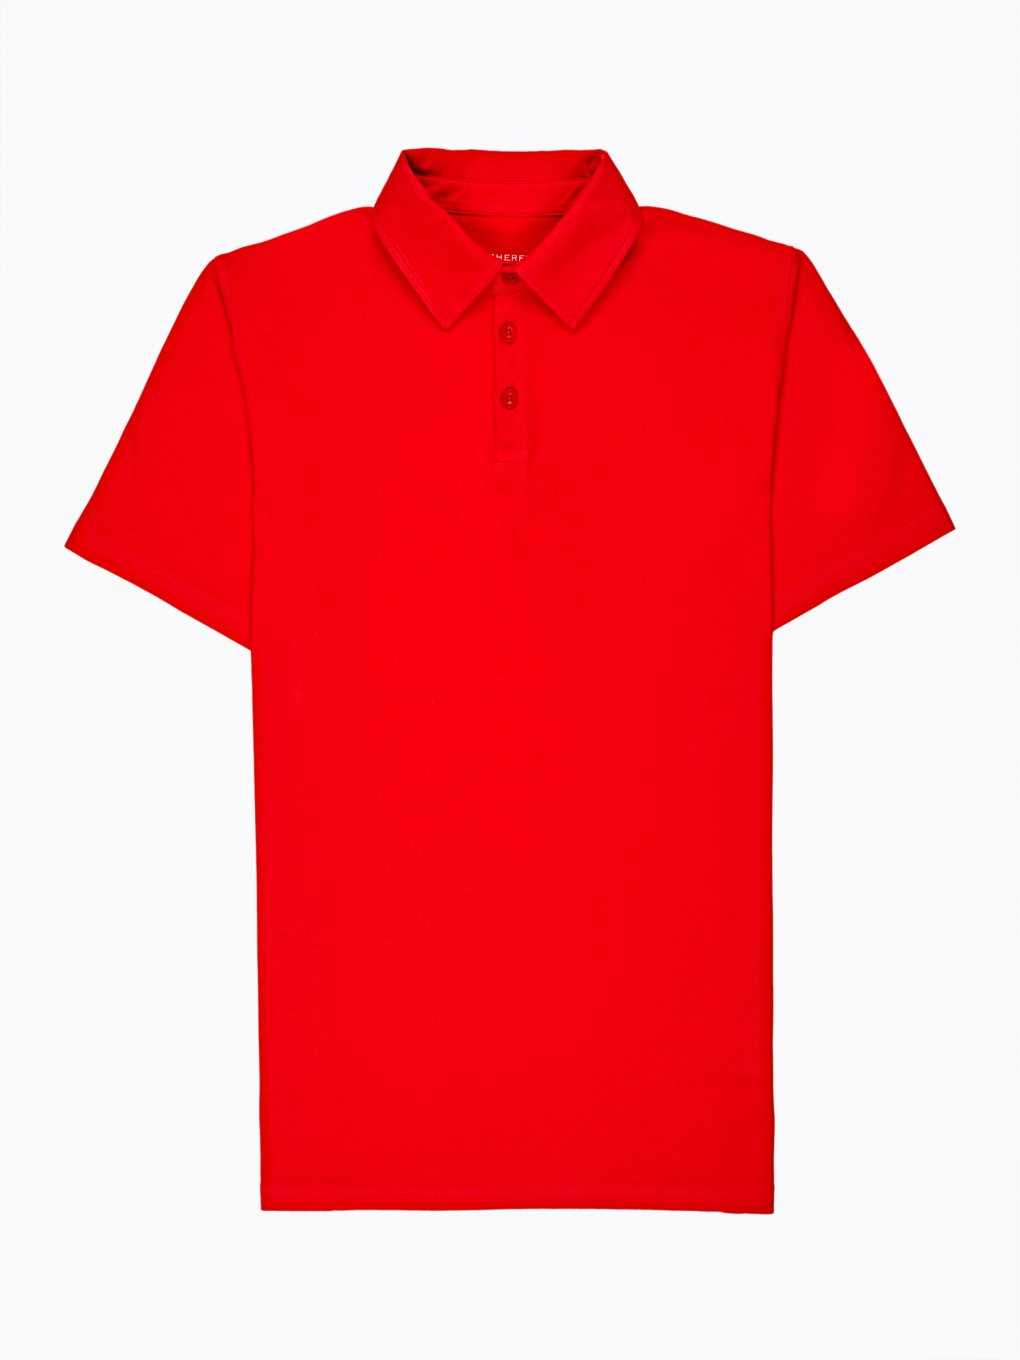 Basic stretch jersey polo shirt